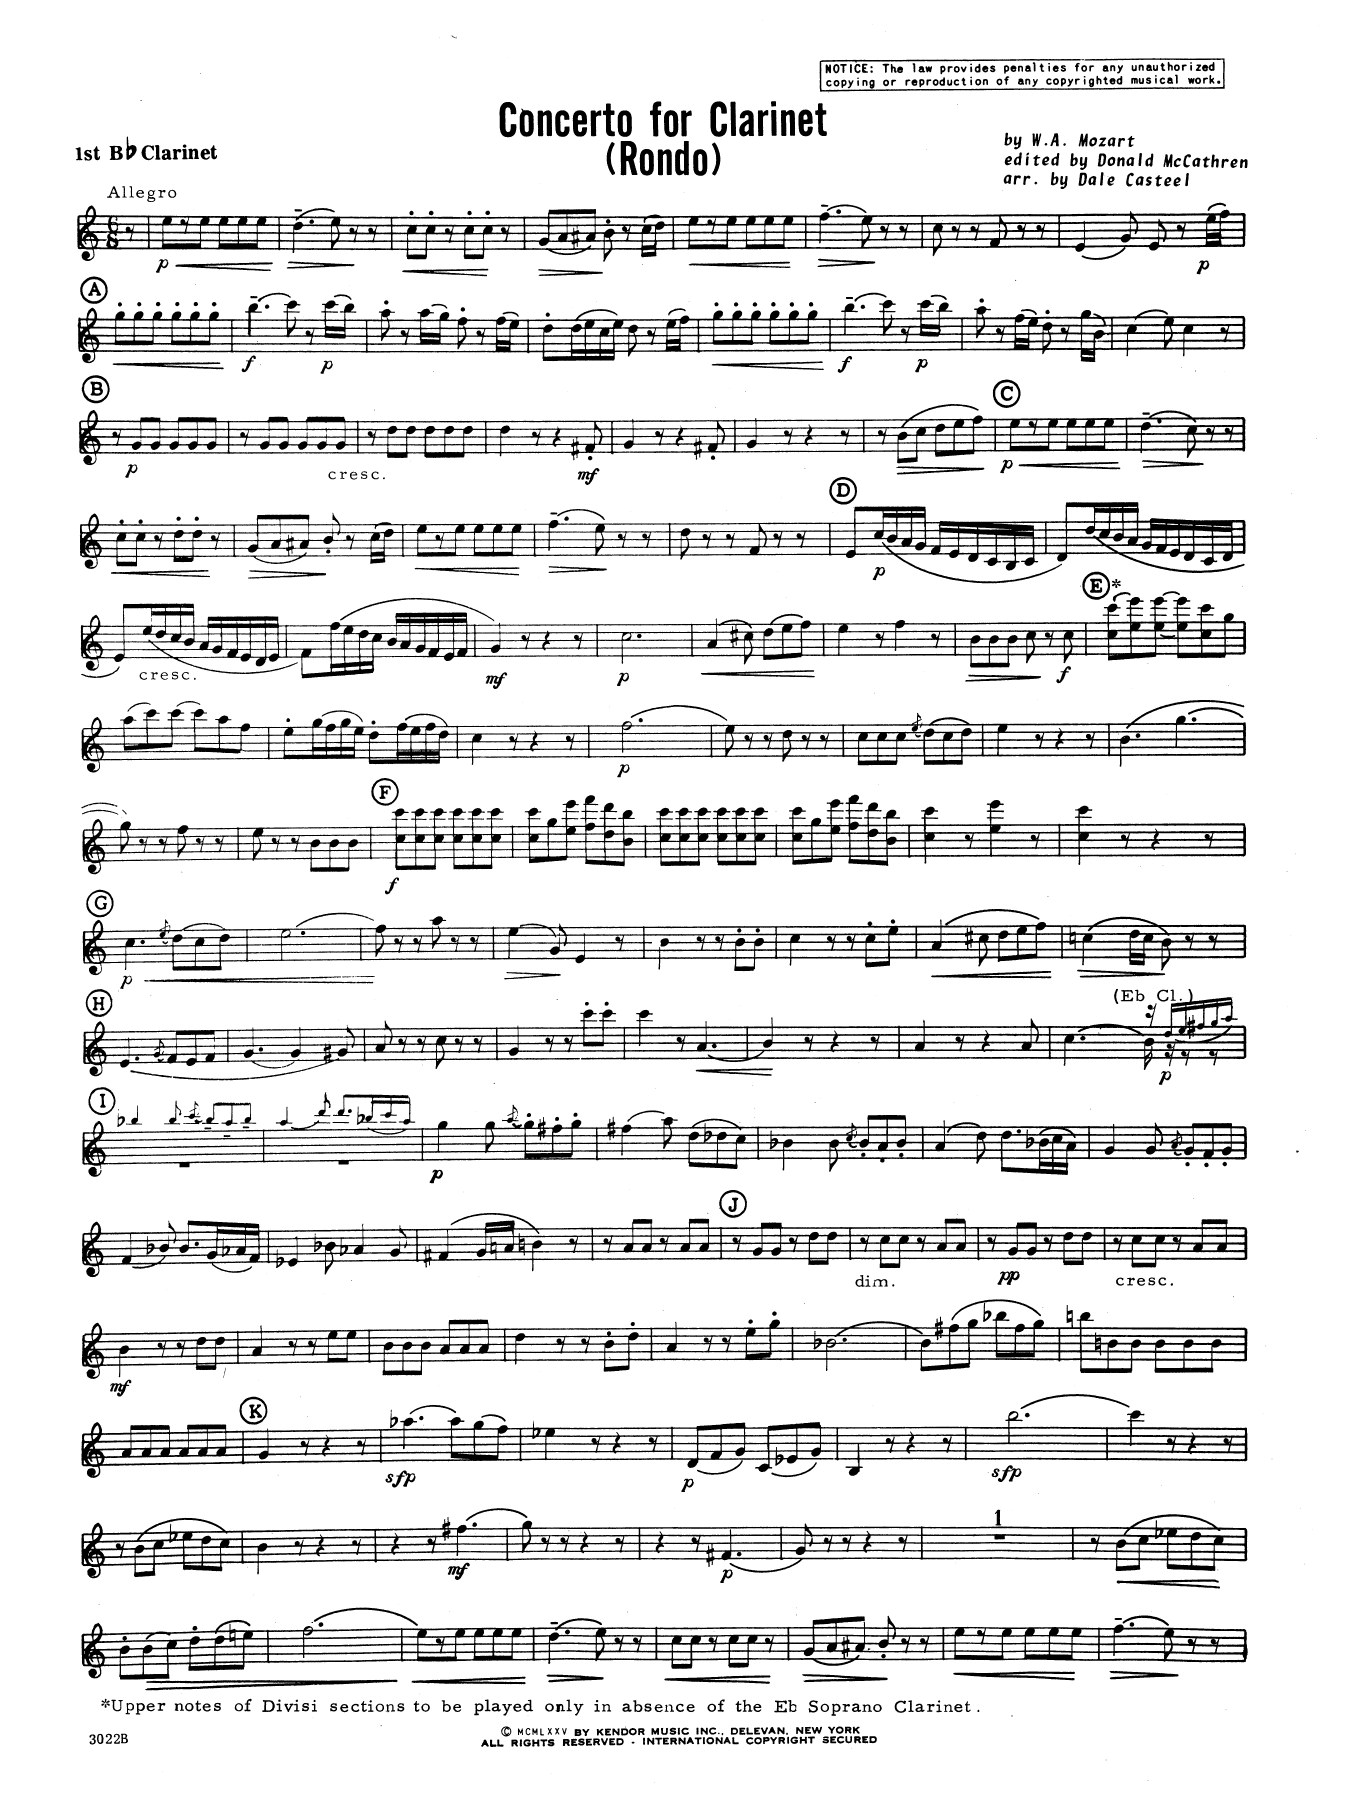 Donald McCathren and Dale Casteel Concerto For Clarinet - Rondo (3rd Movement) - K.622 - 1st Bb Clarinet sheet music notes printable PDF score